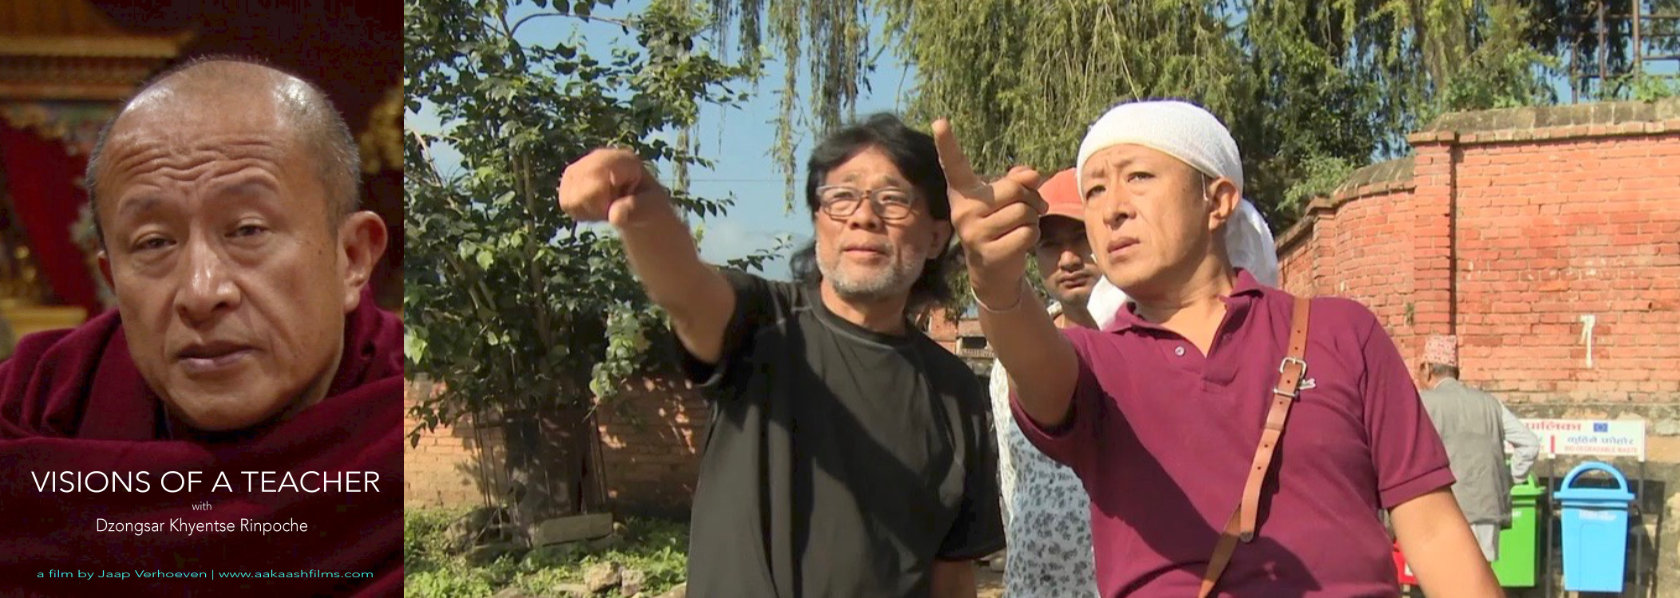 Khyentse Norbu directing staff on set - Visions of a Teacher - THIS Buddhist Film Festival